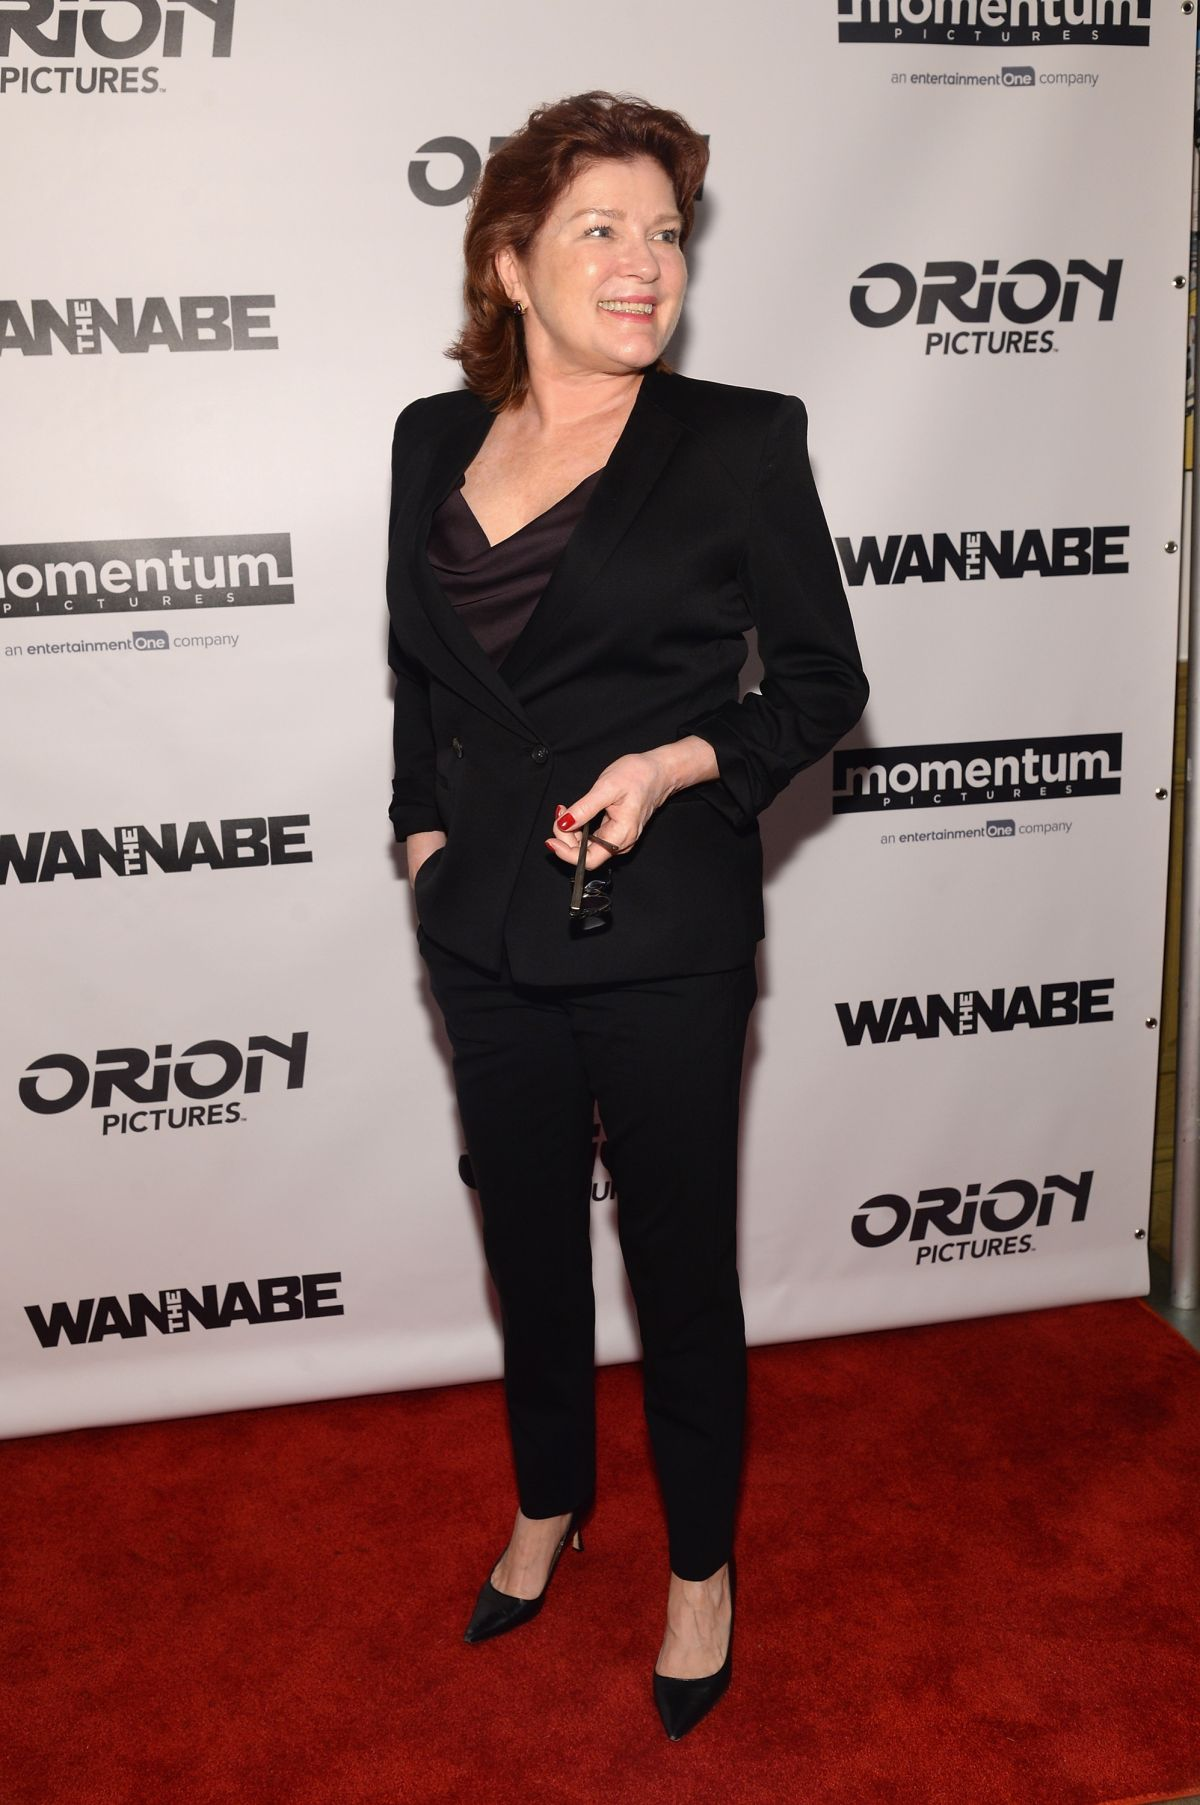 KATE MULGREW at The Wannabe Premiere in New York 12/02/2015